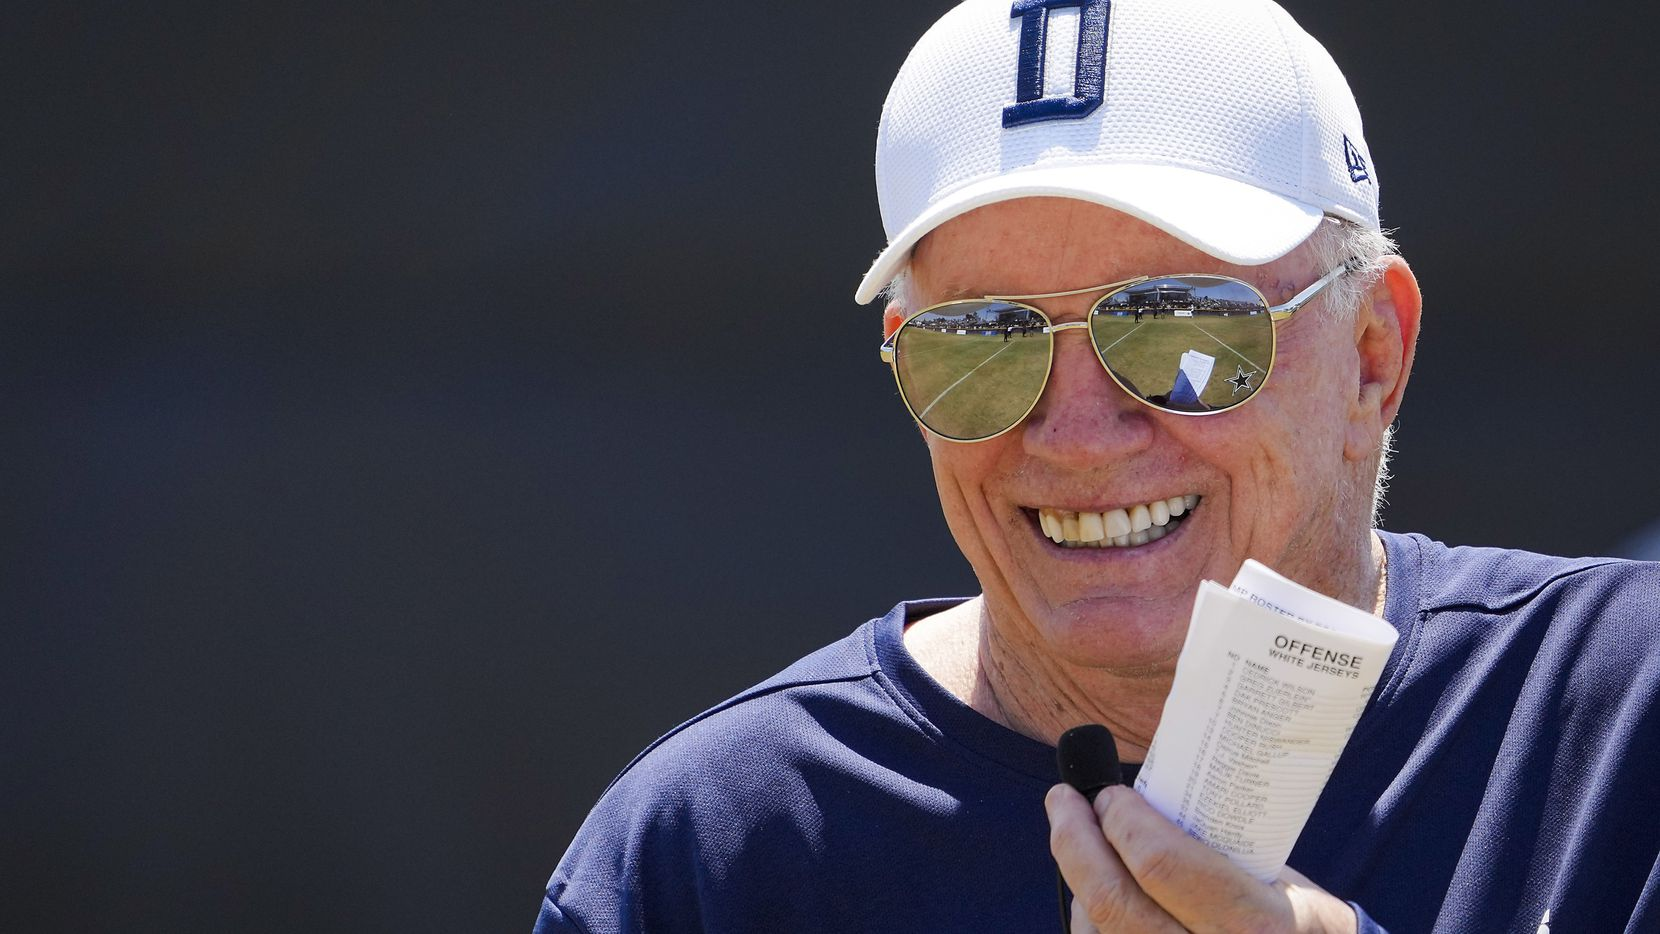 Dallas Cowboys owner and general manager Jerry Jones addresses the crowd following a practice at training camp on Tuesday, Aug. 10, 2021, in Oxnard, Calif. Tuesday's practice was closed to the general public for Heroes Appreciation Day, honoring military and first responders.